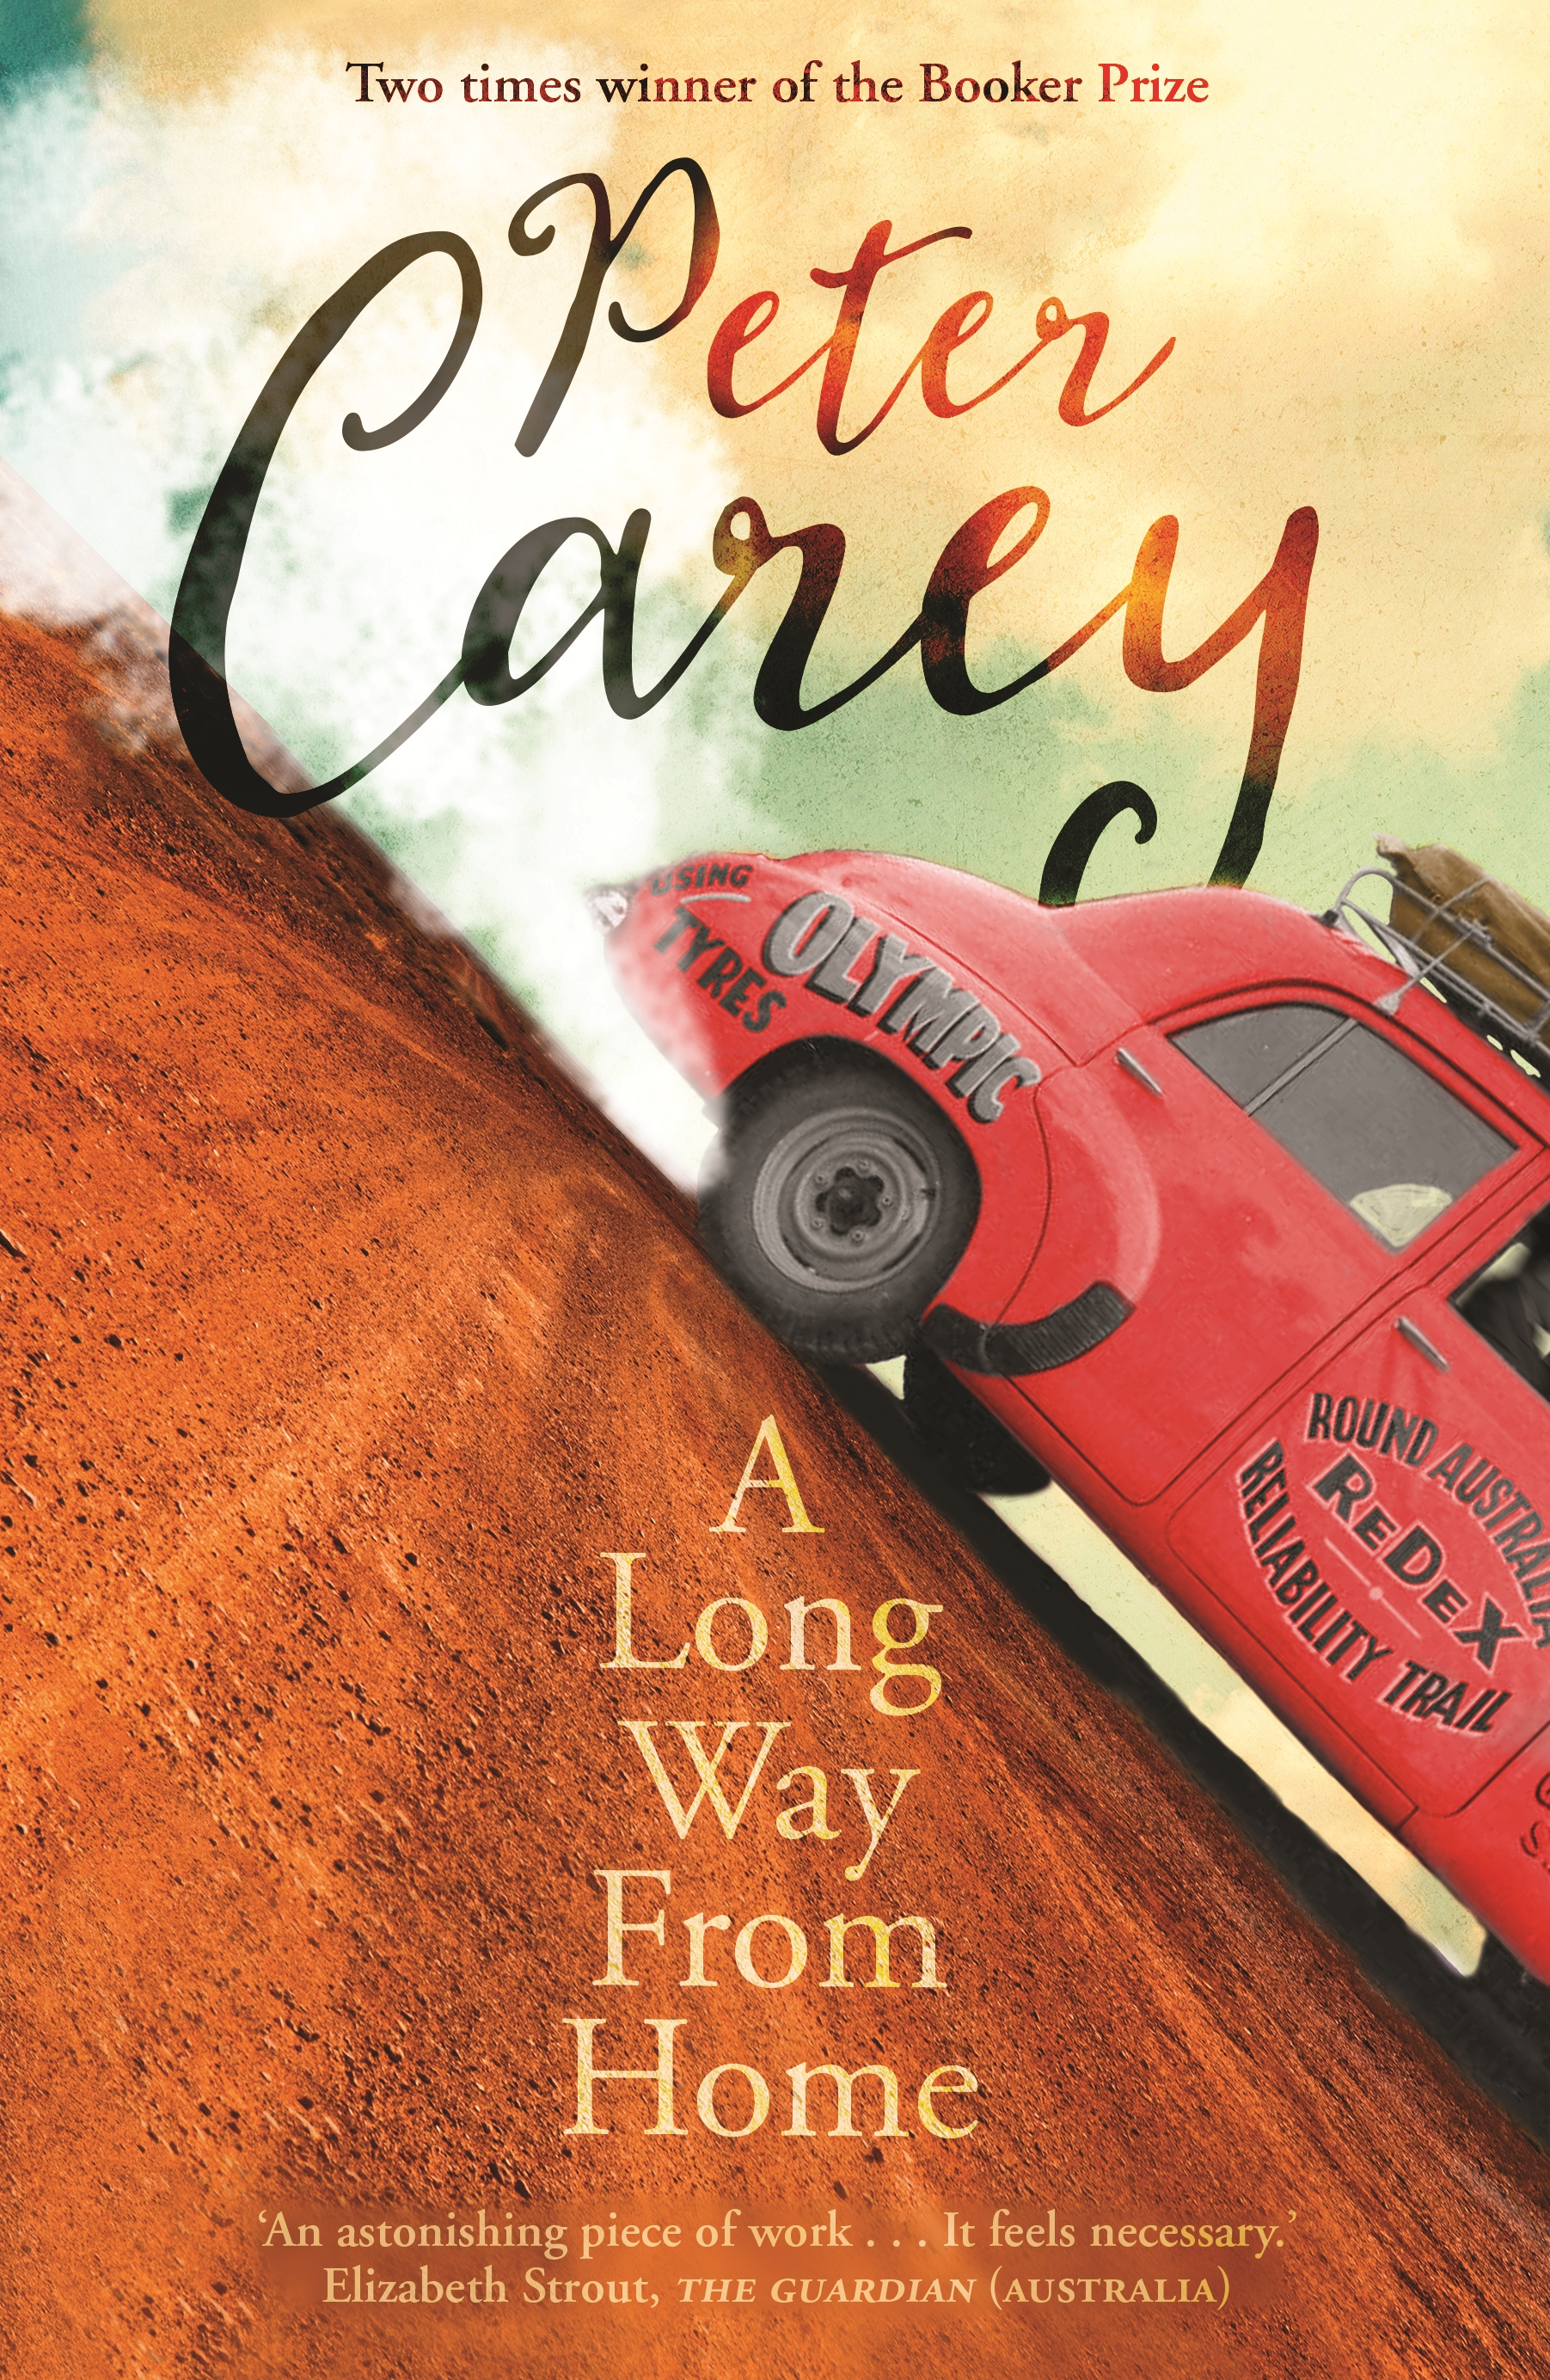 Extract A Long Way From Home By Peter Carey Penguin Books Australia